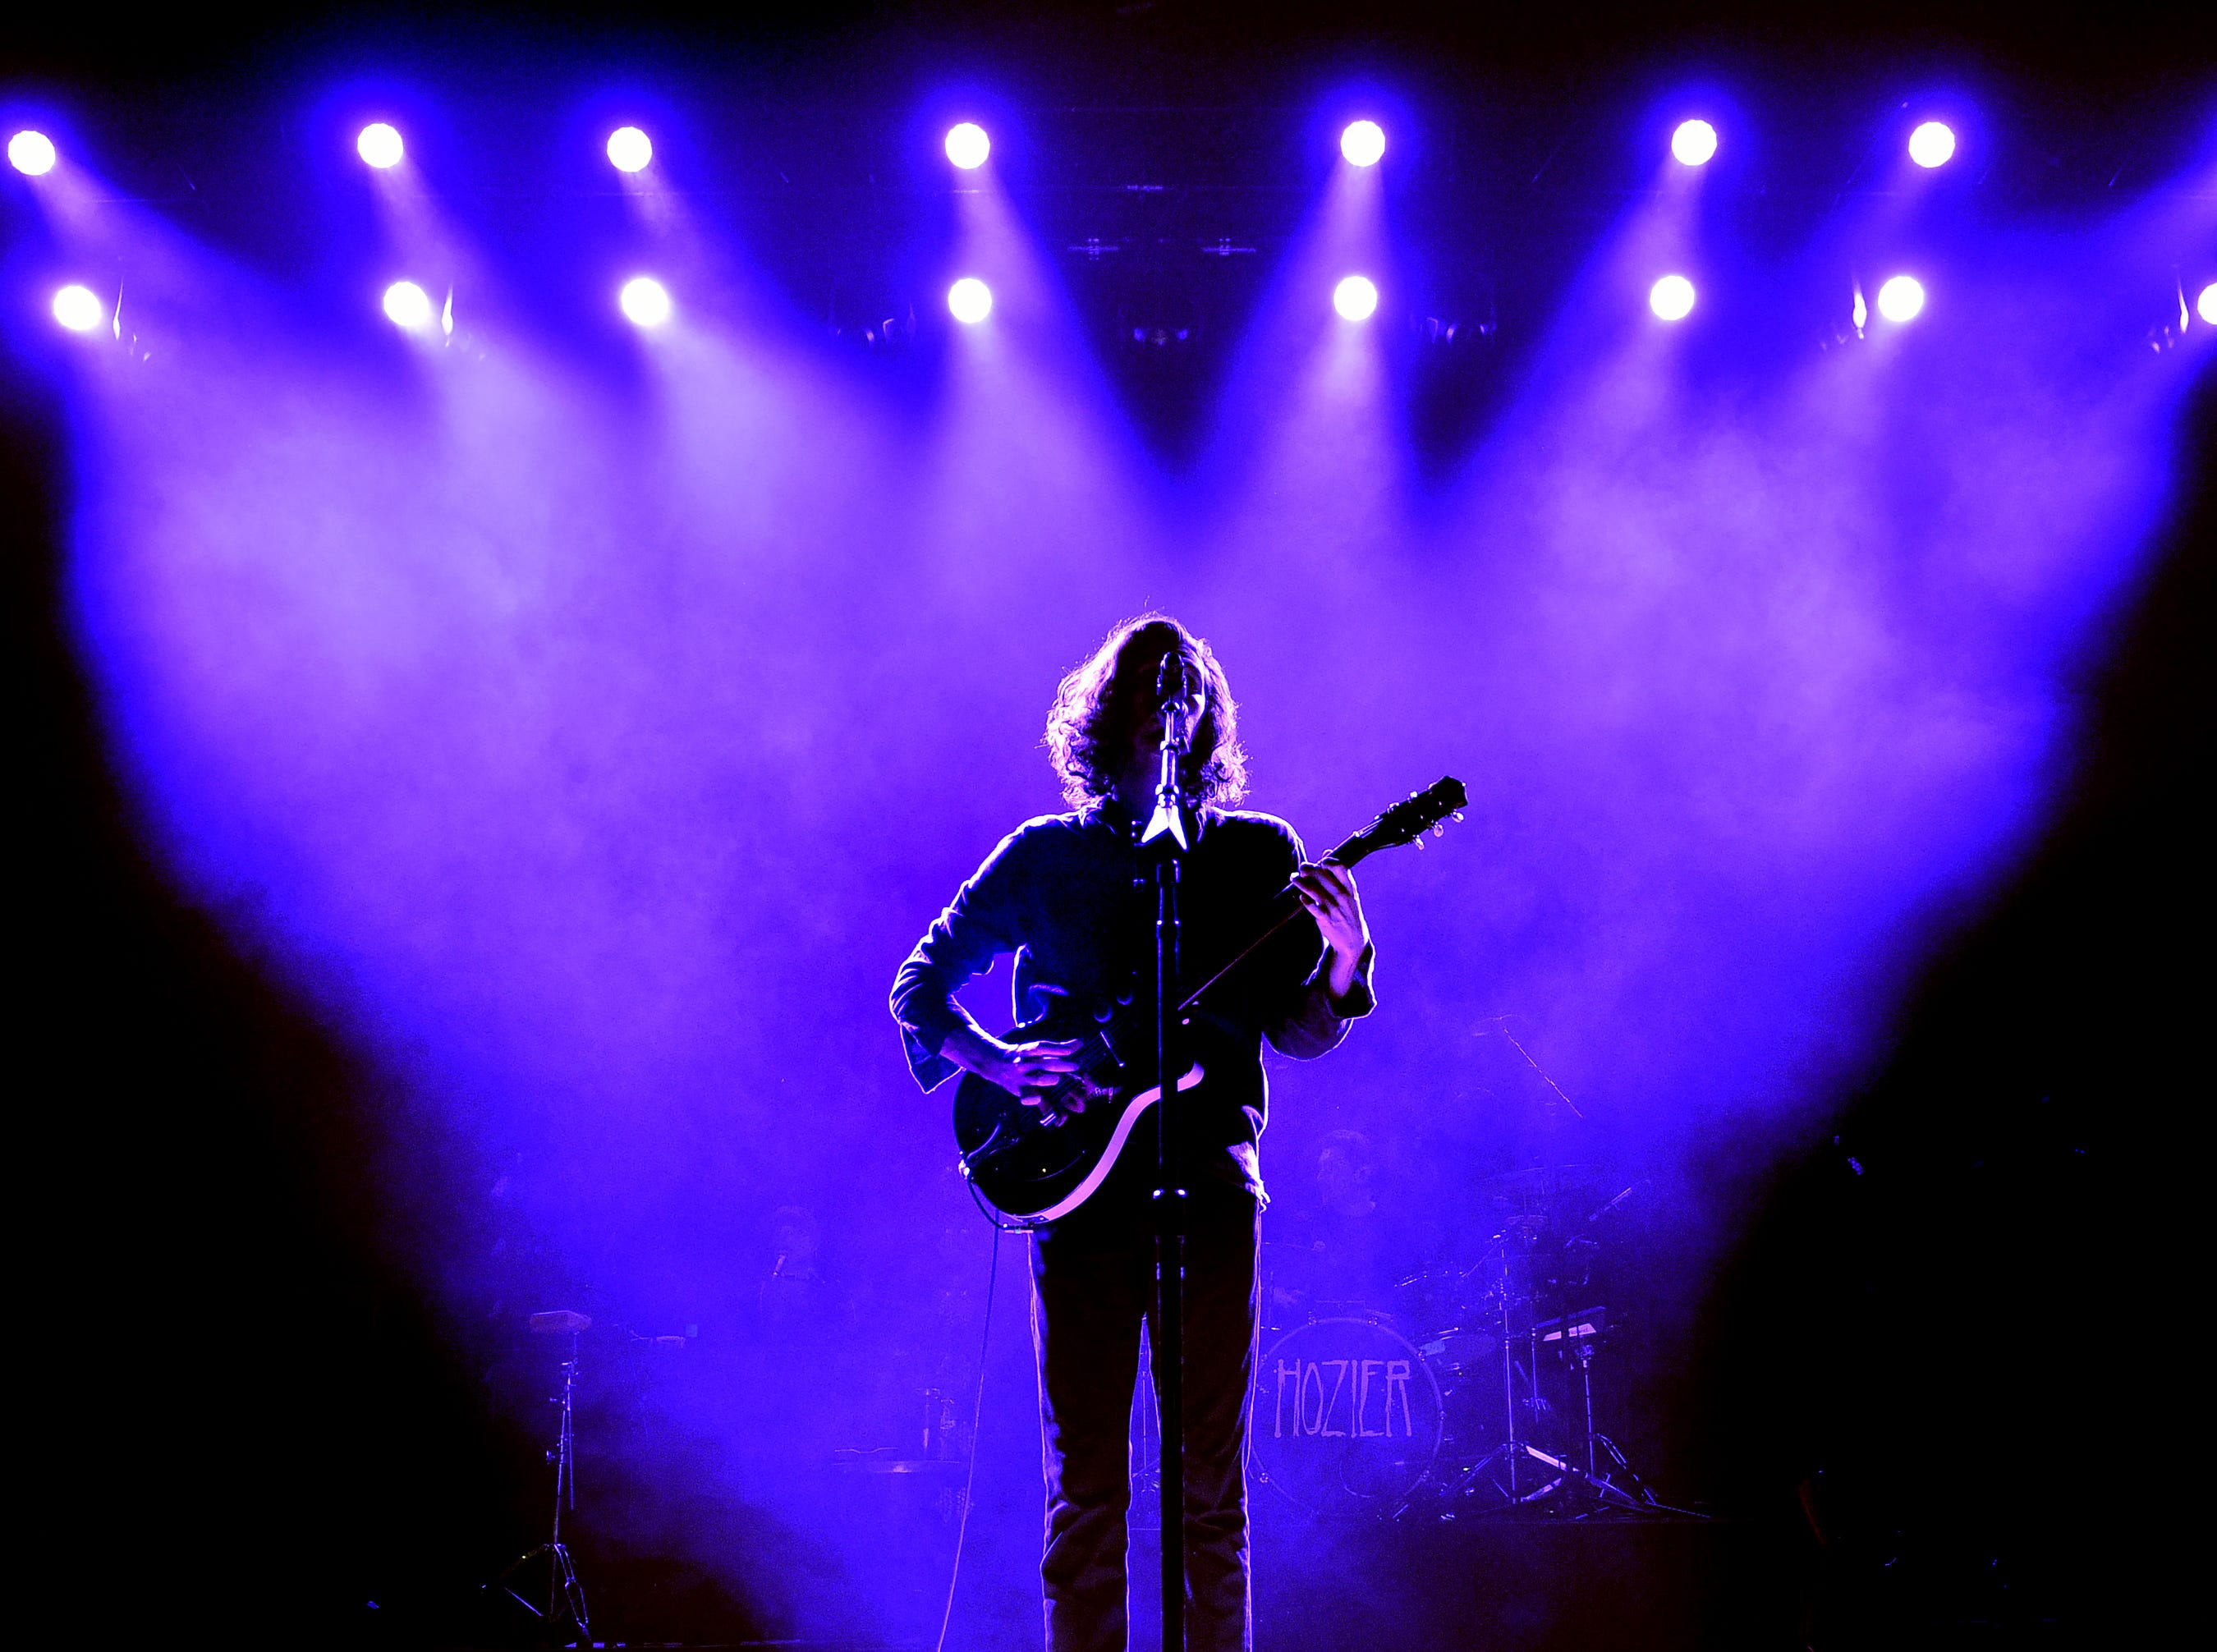 MANCHESTER, ENGLAND - DECEMBER 06: Hozier performs at O2 Apollo Manchester on December 06, 2018 in Manchester, England. (Photo by Shirlaine Forrest/WireImage) ORG XMIT: 775268012 ORIG FILE ID: 1078258130